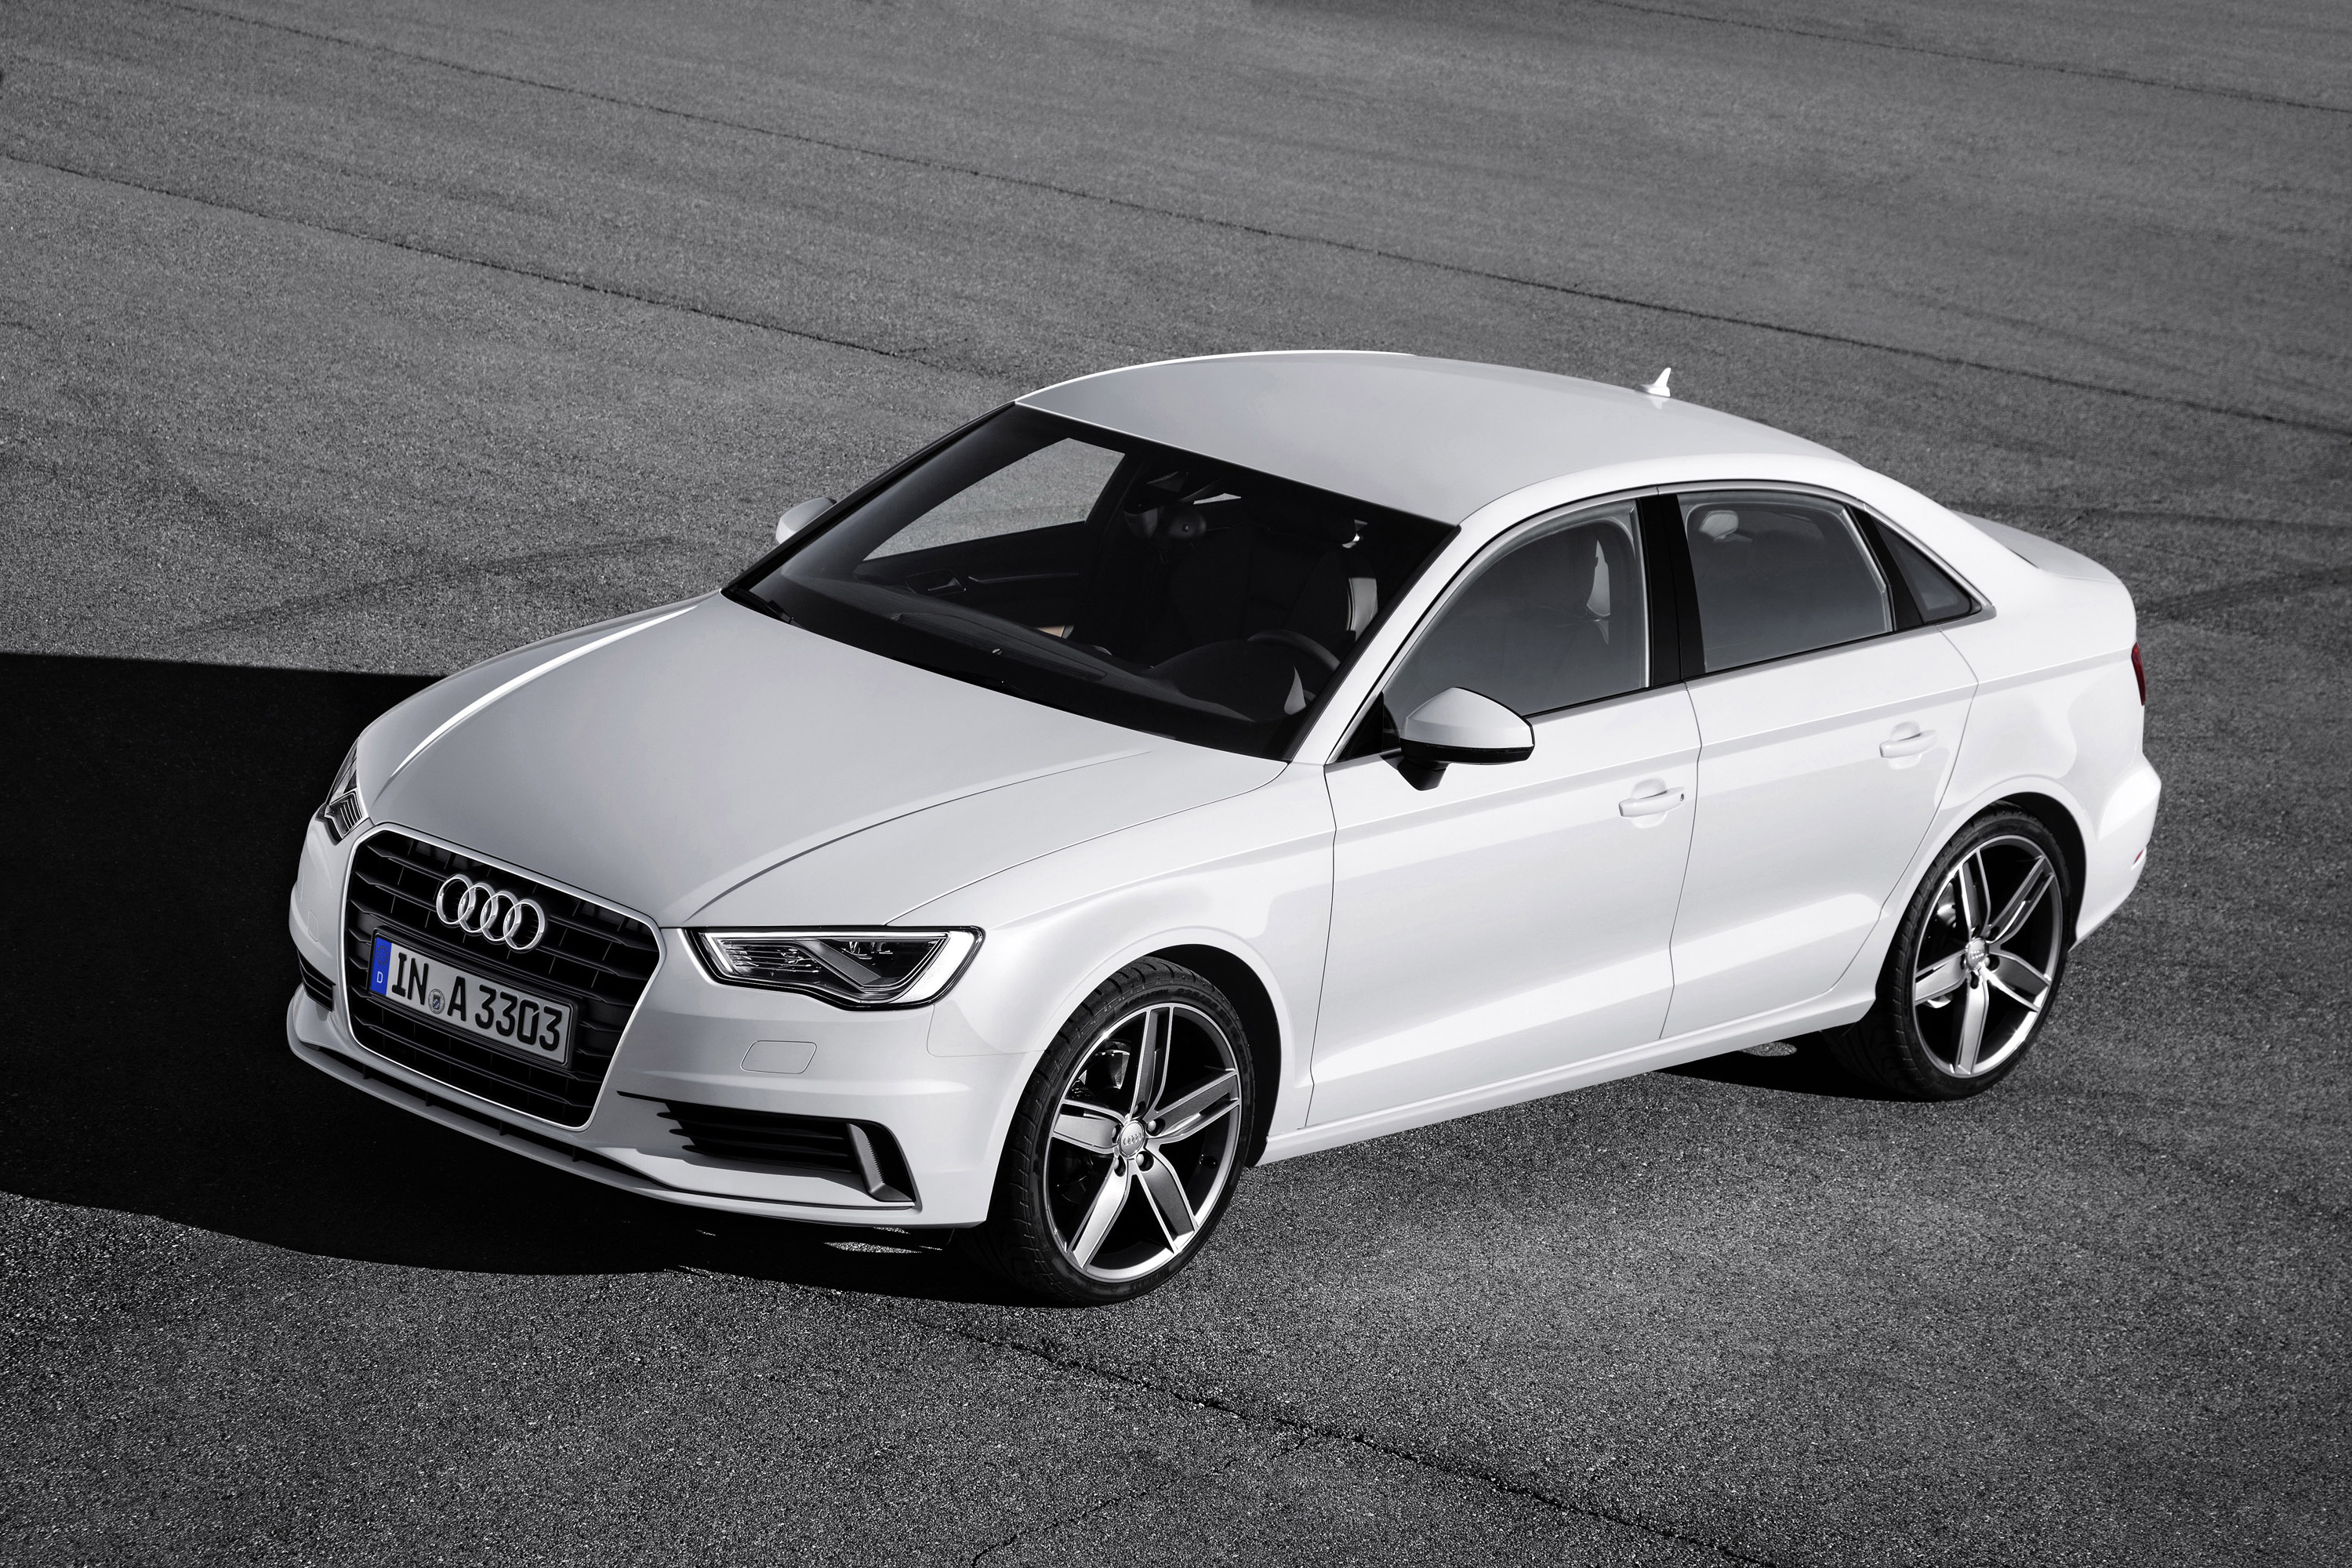 2014 audi a3 sedan full specs. Black Bedroom Furniture Sets. Home Design Ideas